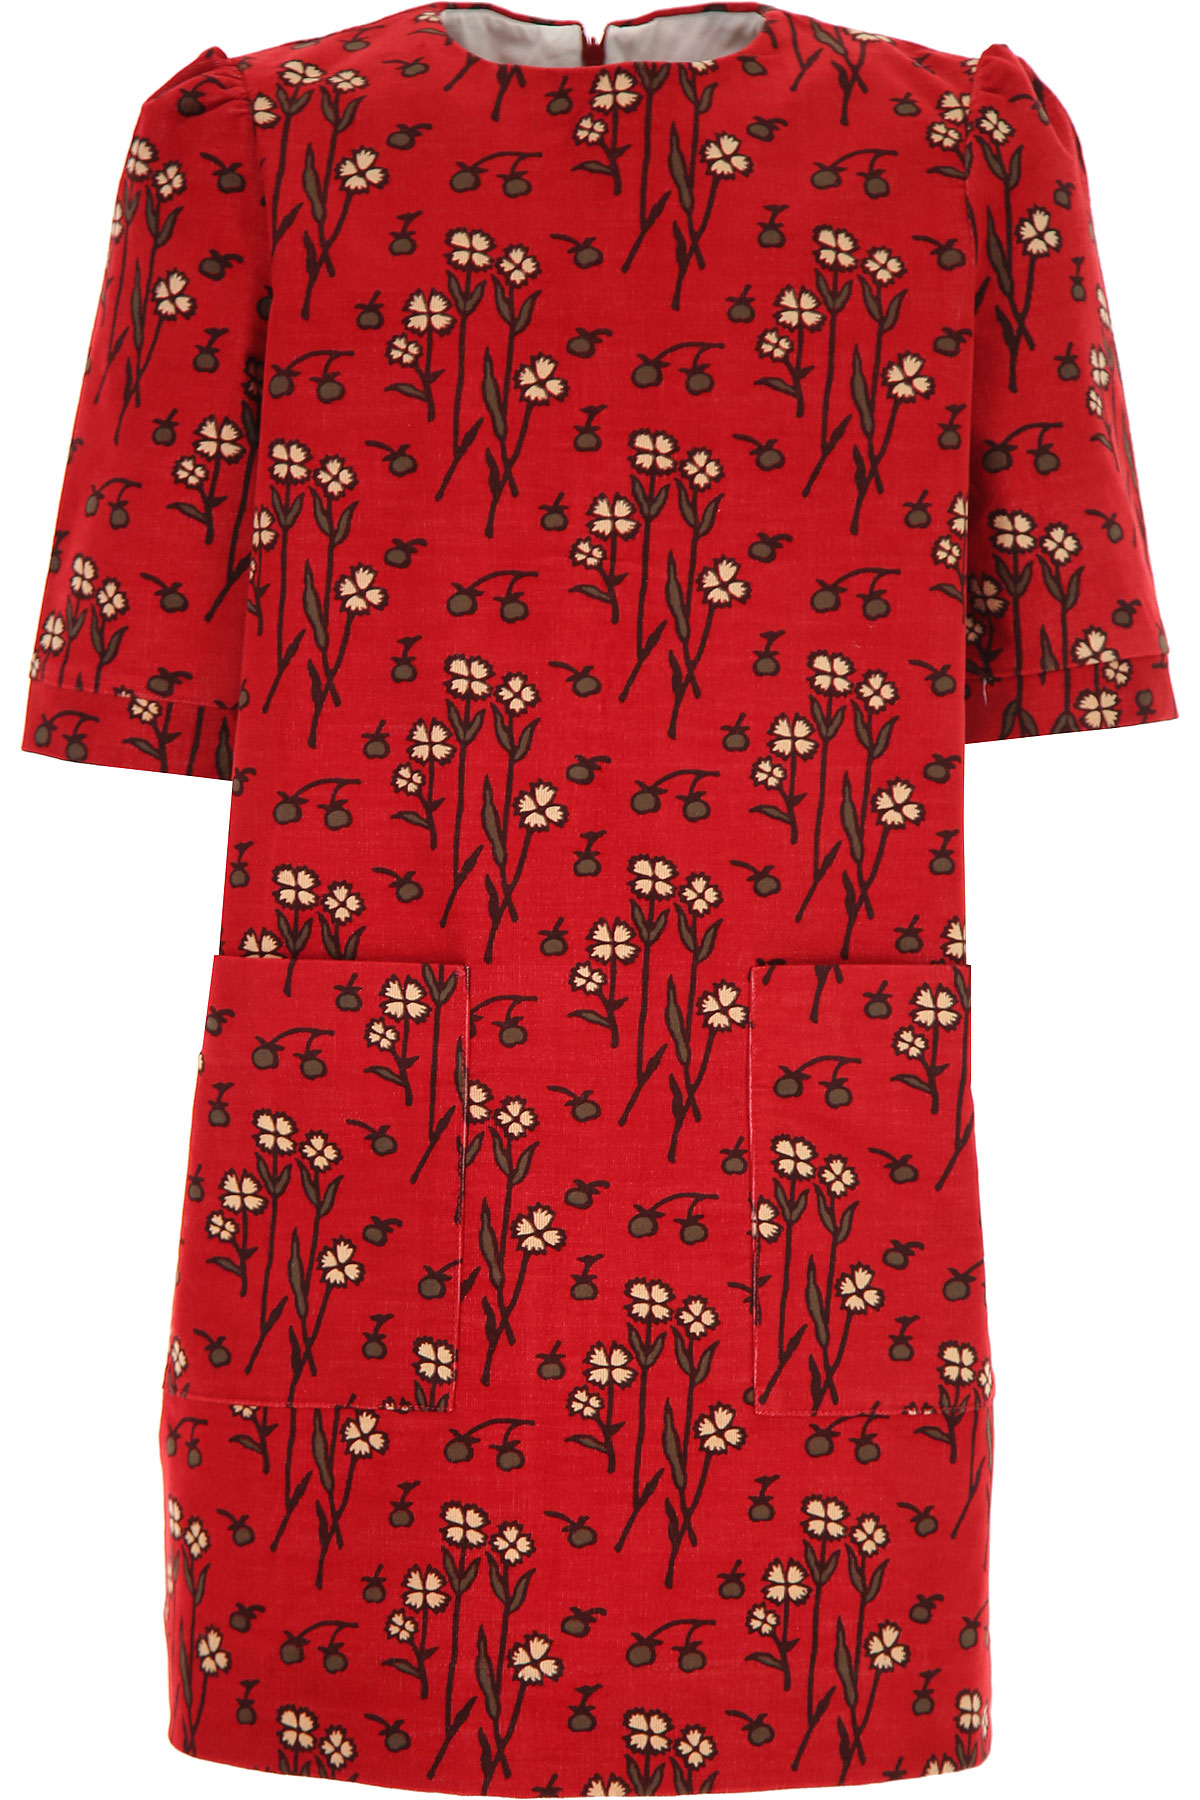 Bonpoint Girls Dress On Sale, Red, Cotton, 2019, 10Y 12Y